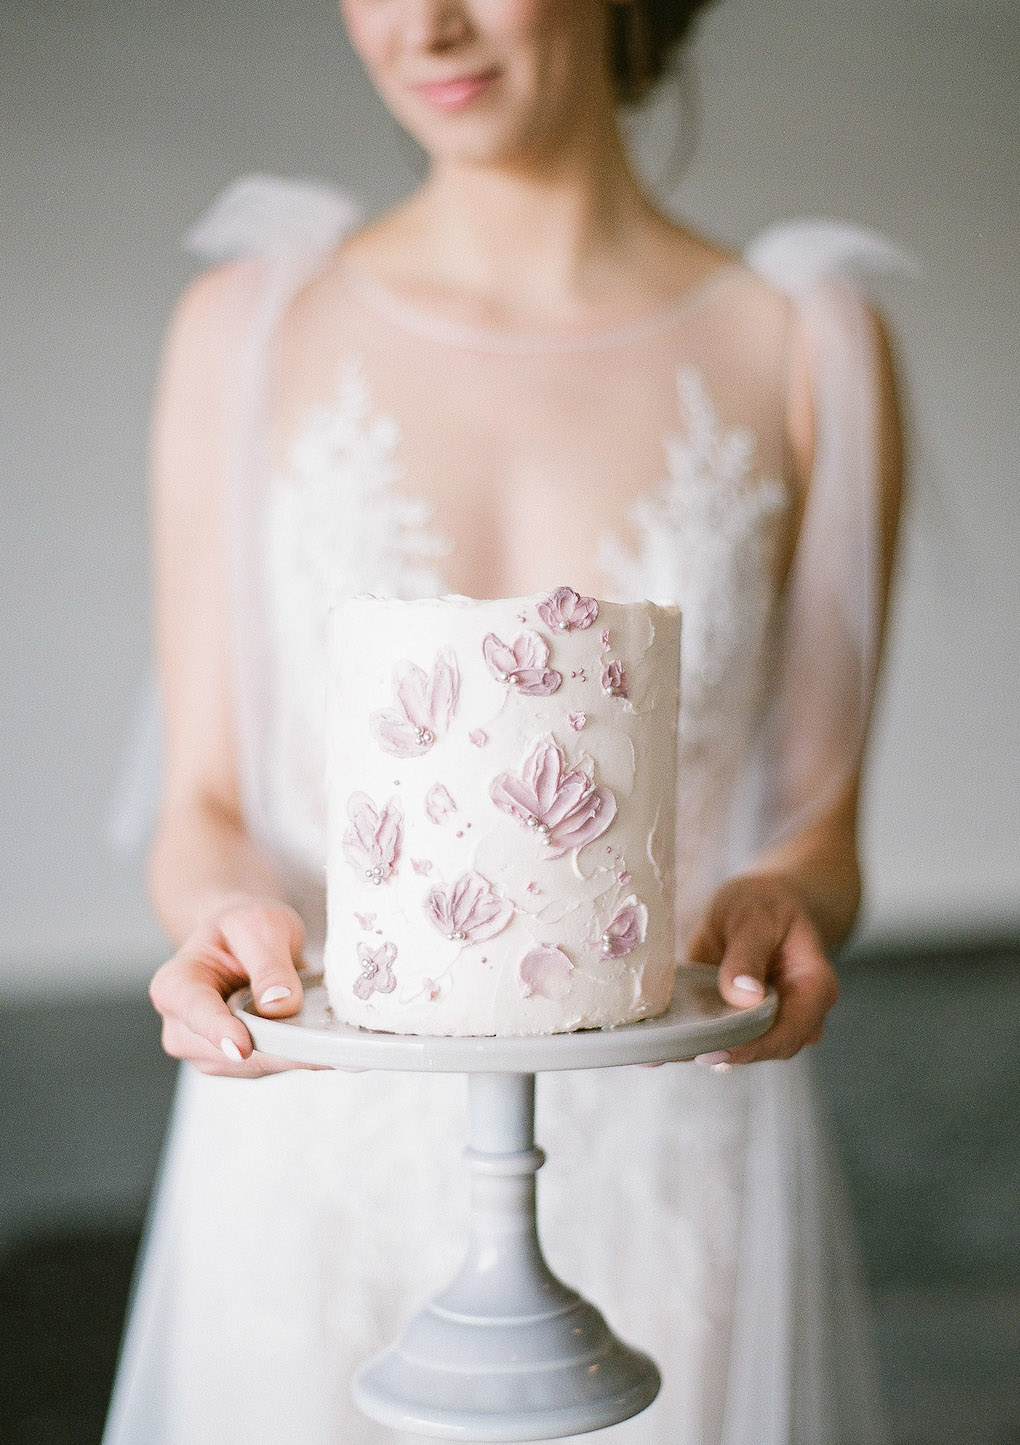 Beautiful pink detailed wedding cake: Soft and Subtle Palettes of Spring Blossoms | Editorial Shoot at The Renaissance Pittsburgh by Exhale Events. See more inspiration at exhale-events.com!